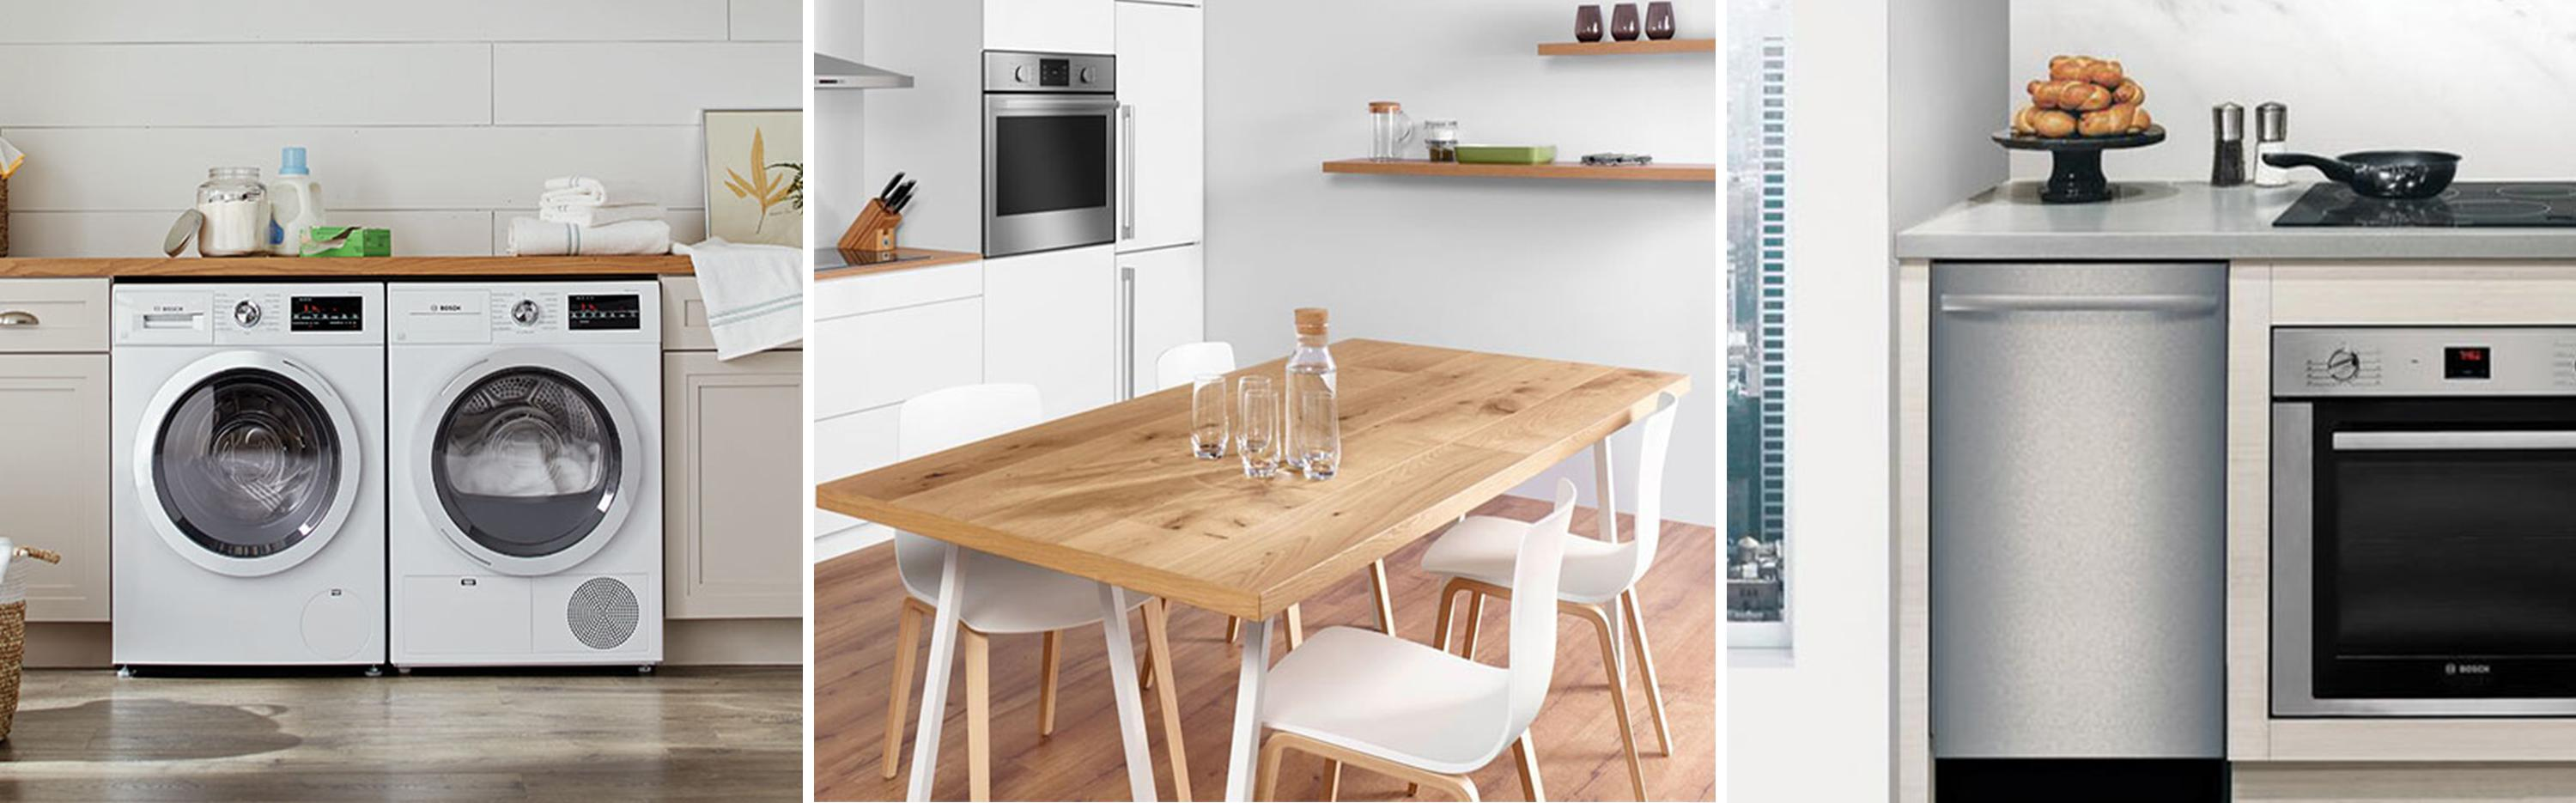 The Home Depot Bosch Appliances For Your Small Space